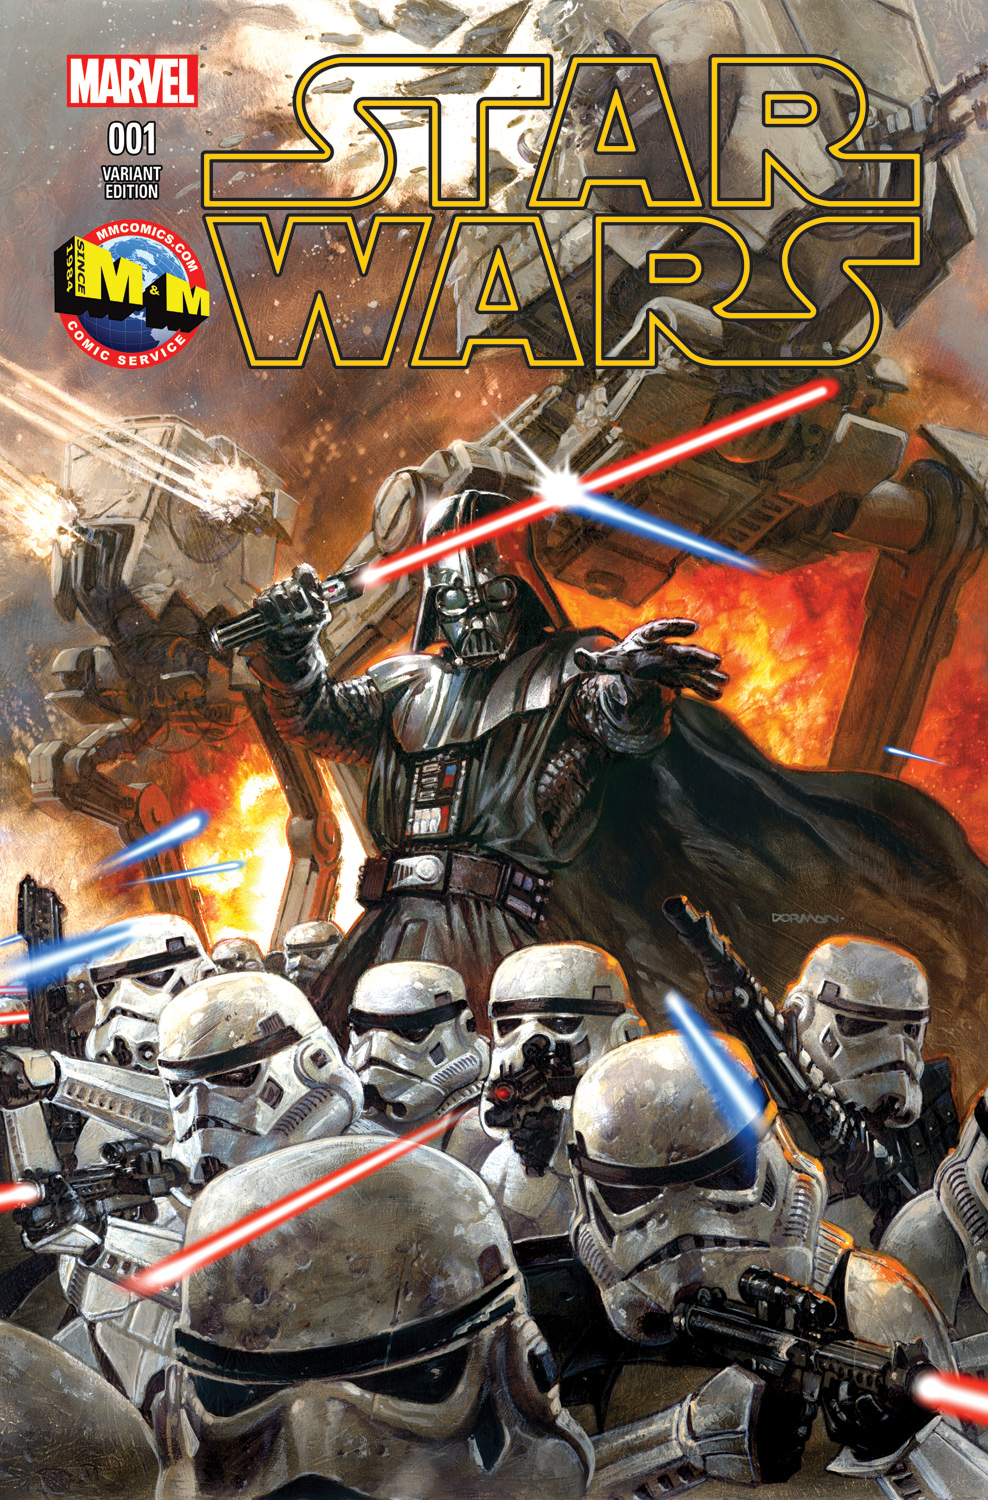 Star Wars #1 (Dave Dorman M&M Comics Variant Cover) (14.01.2015)